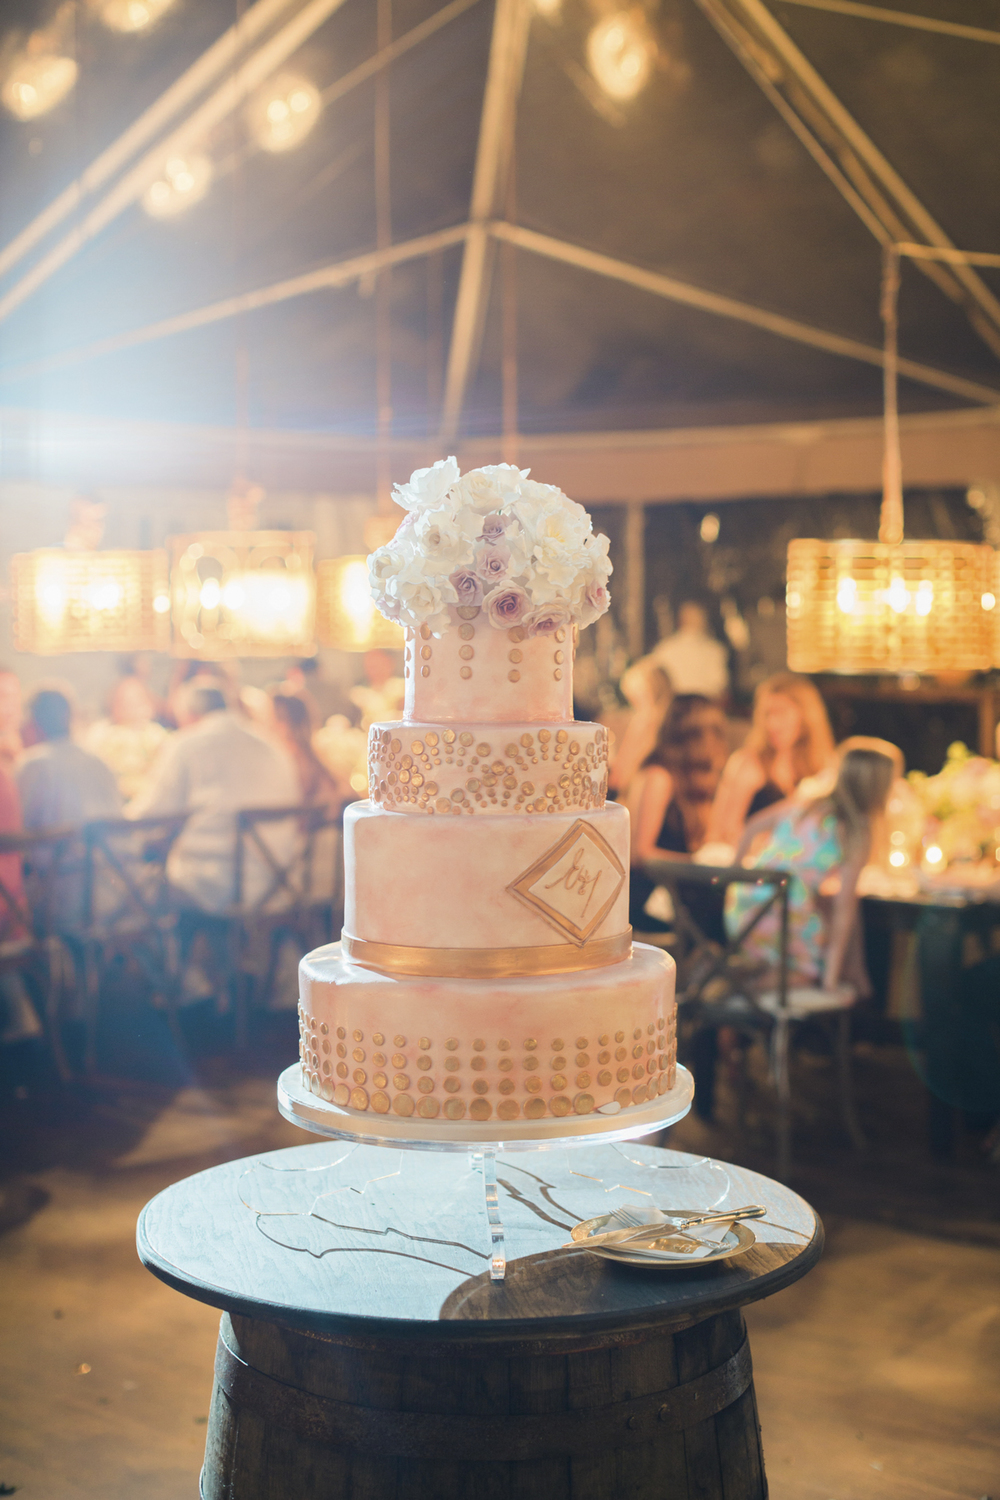 south_carolina_farm_wedding_rustic_chic_surprise_secret_luxe_wedding_bachelorette_emily_maynard_real_weddings-13.jpg